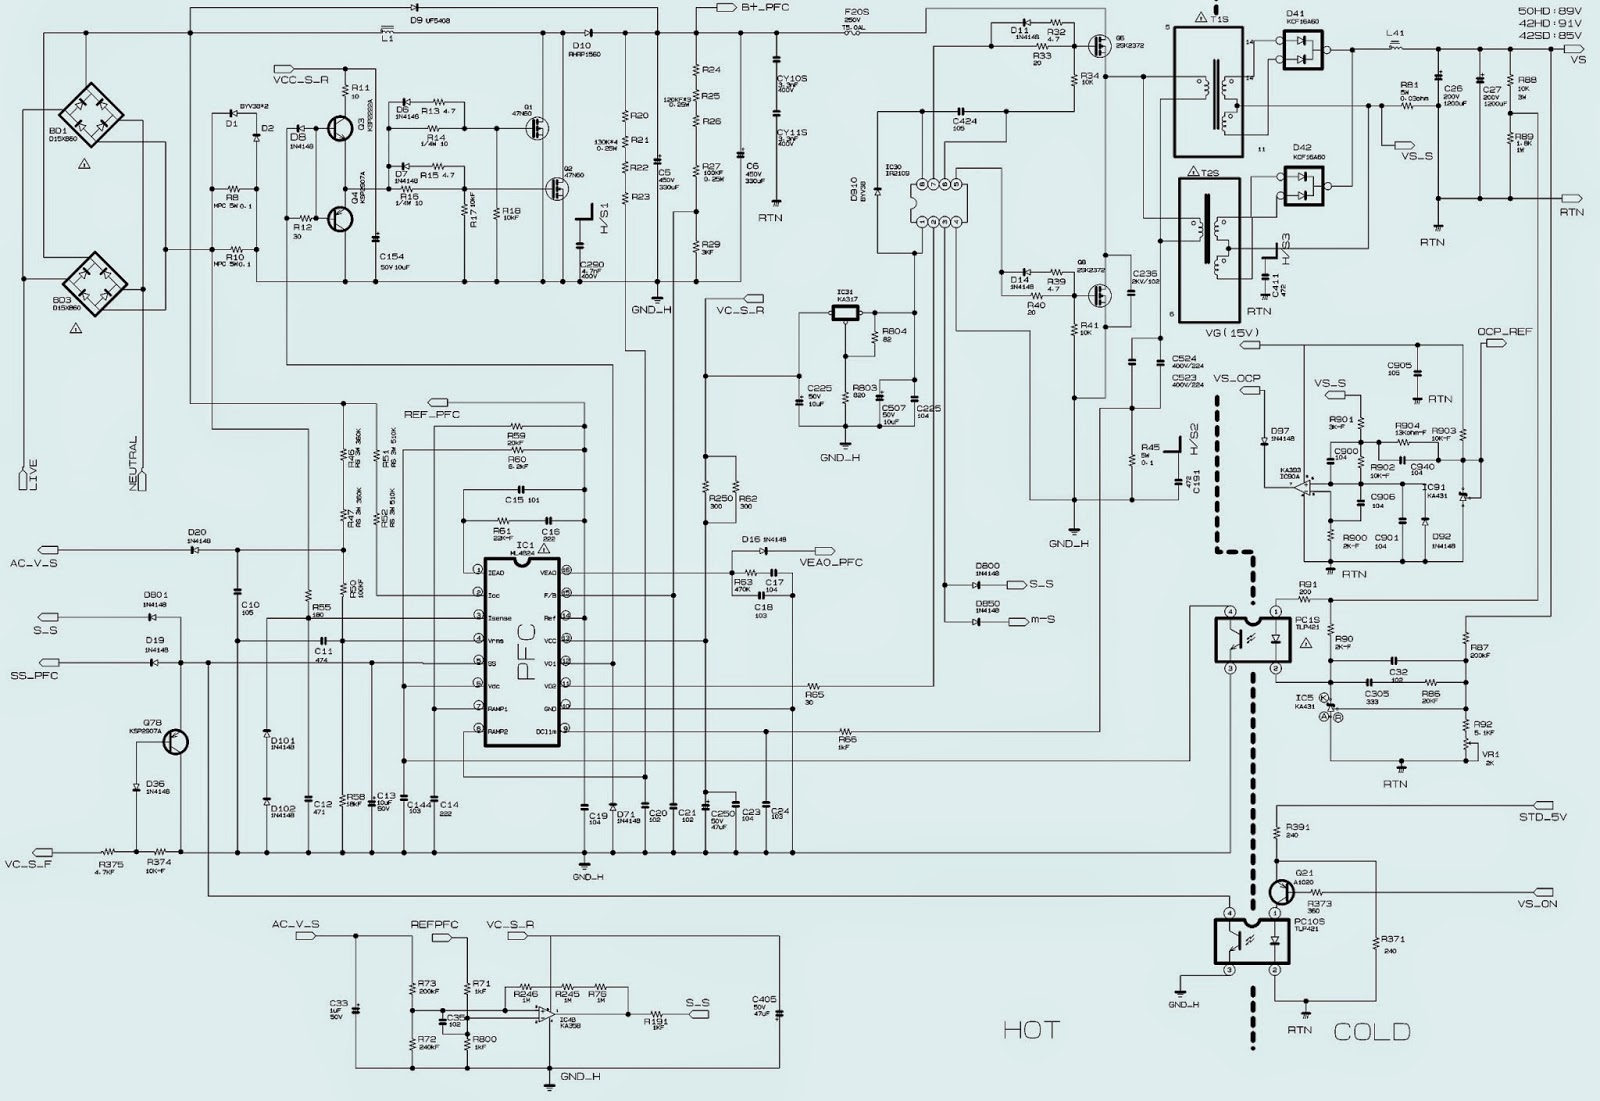 bn 96 samsung power supply schematic circuit diagram electro help samsung power supply schematic diagrams [ 1600 x 1101 Pixel ]